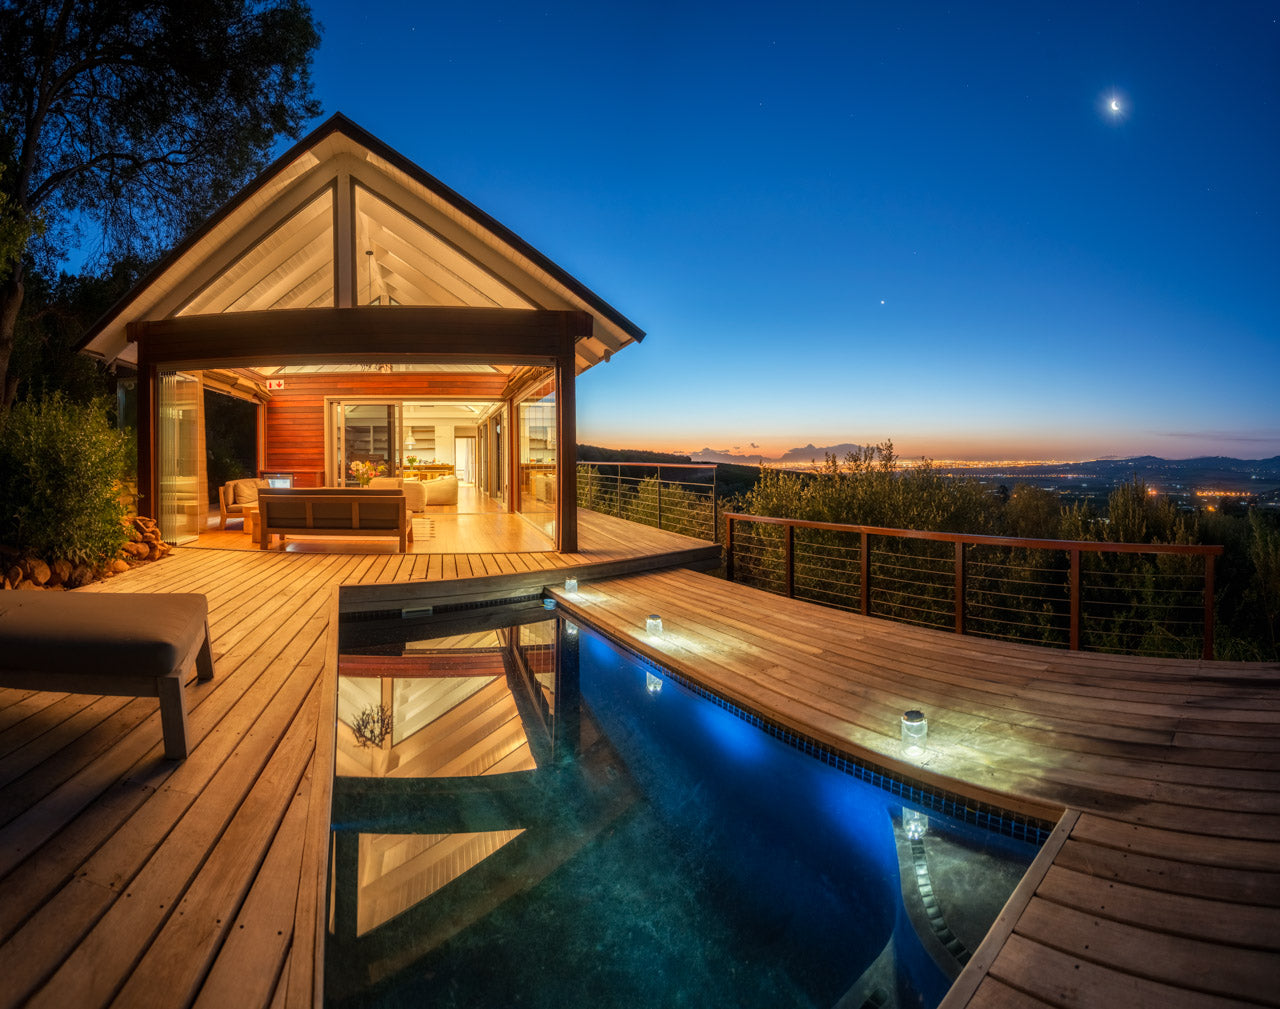 The 18 Best Villas To Rent in Cape Town - Inside Guide